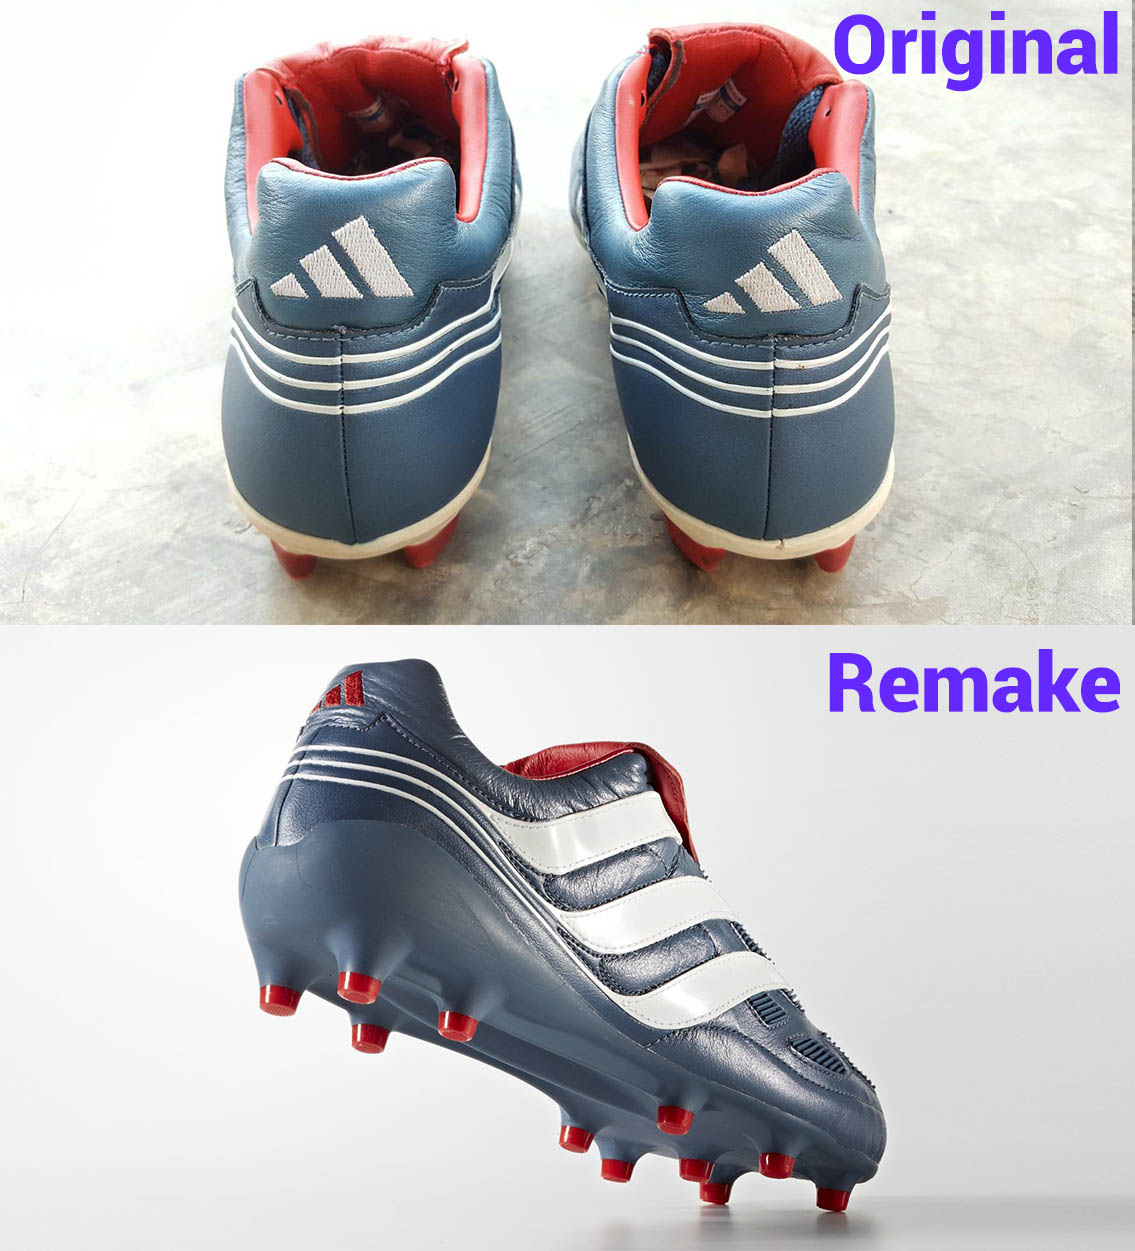 hot sale online 4bdff 7ad83 Will Are you happy with the remake of the Adidas Predator Precision Comment  below, and check Adidas Predator Precision - 2017 Remake vs 2000 ...